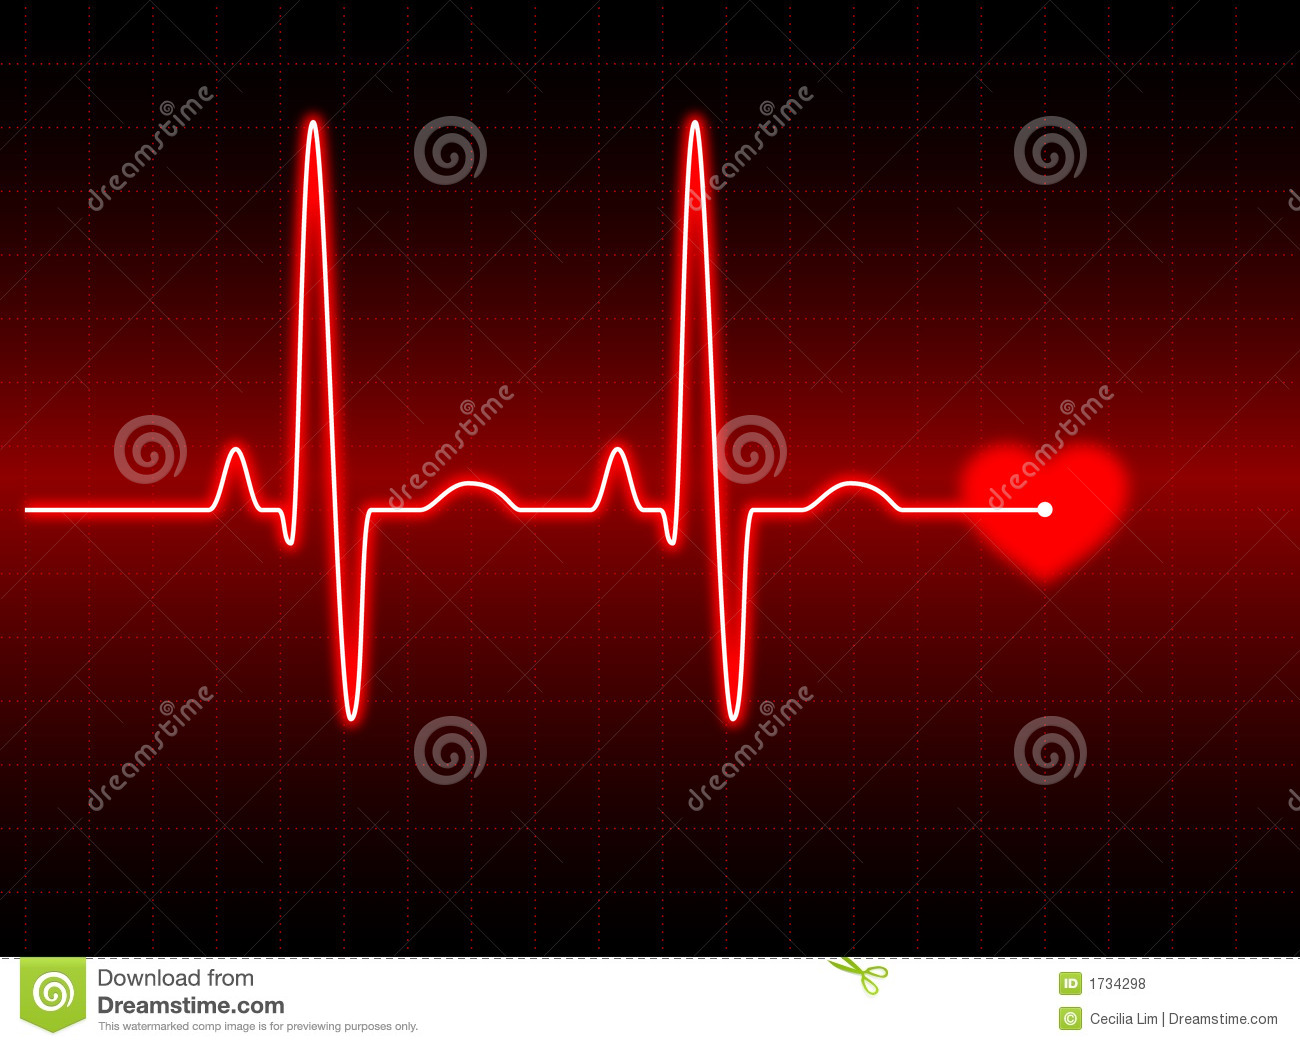 Illustration of an electrocardiogram (ECG) #2. See my portfolio for ...